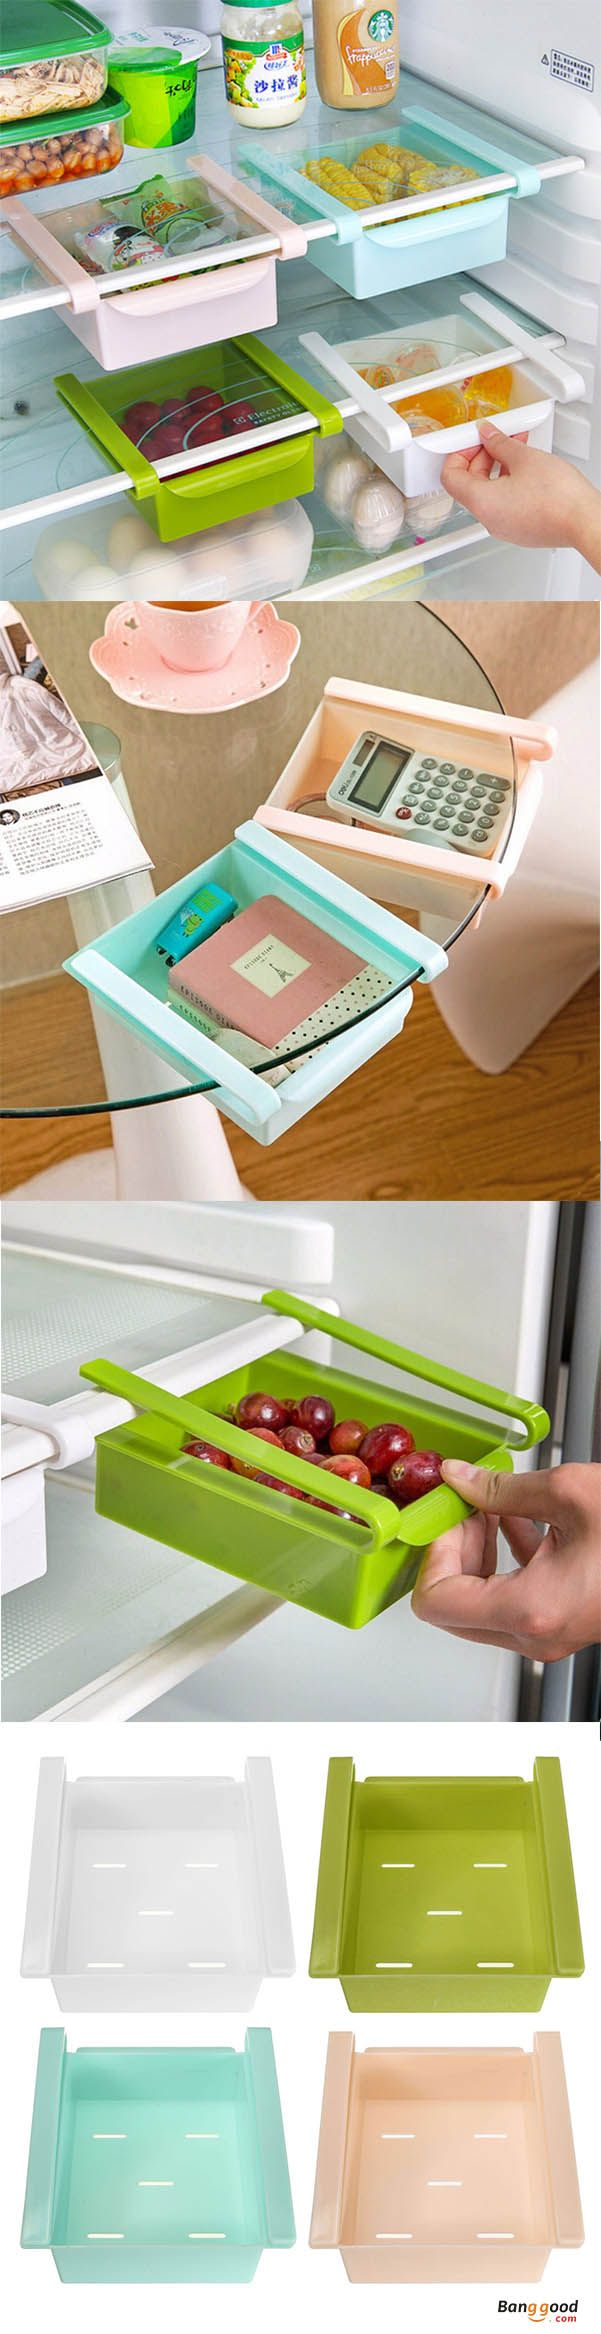 Us 5 49 45 Honana Plastic Kitchen Refrigerator Fridge Storage Rack Freezer Shelf Holder Kitchen Organization Kitchen Dining Bar From Home And Garden On Bangg Kitchen Refrigerator Fridge Storage Kitchen Organization